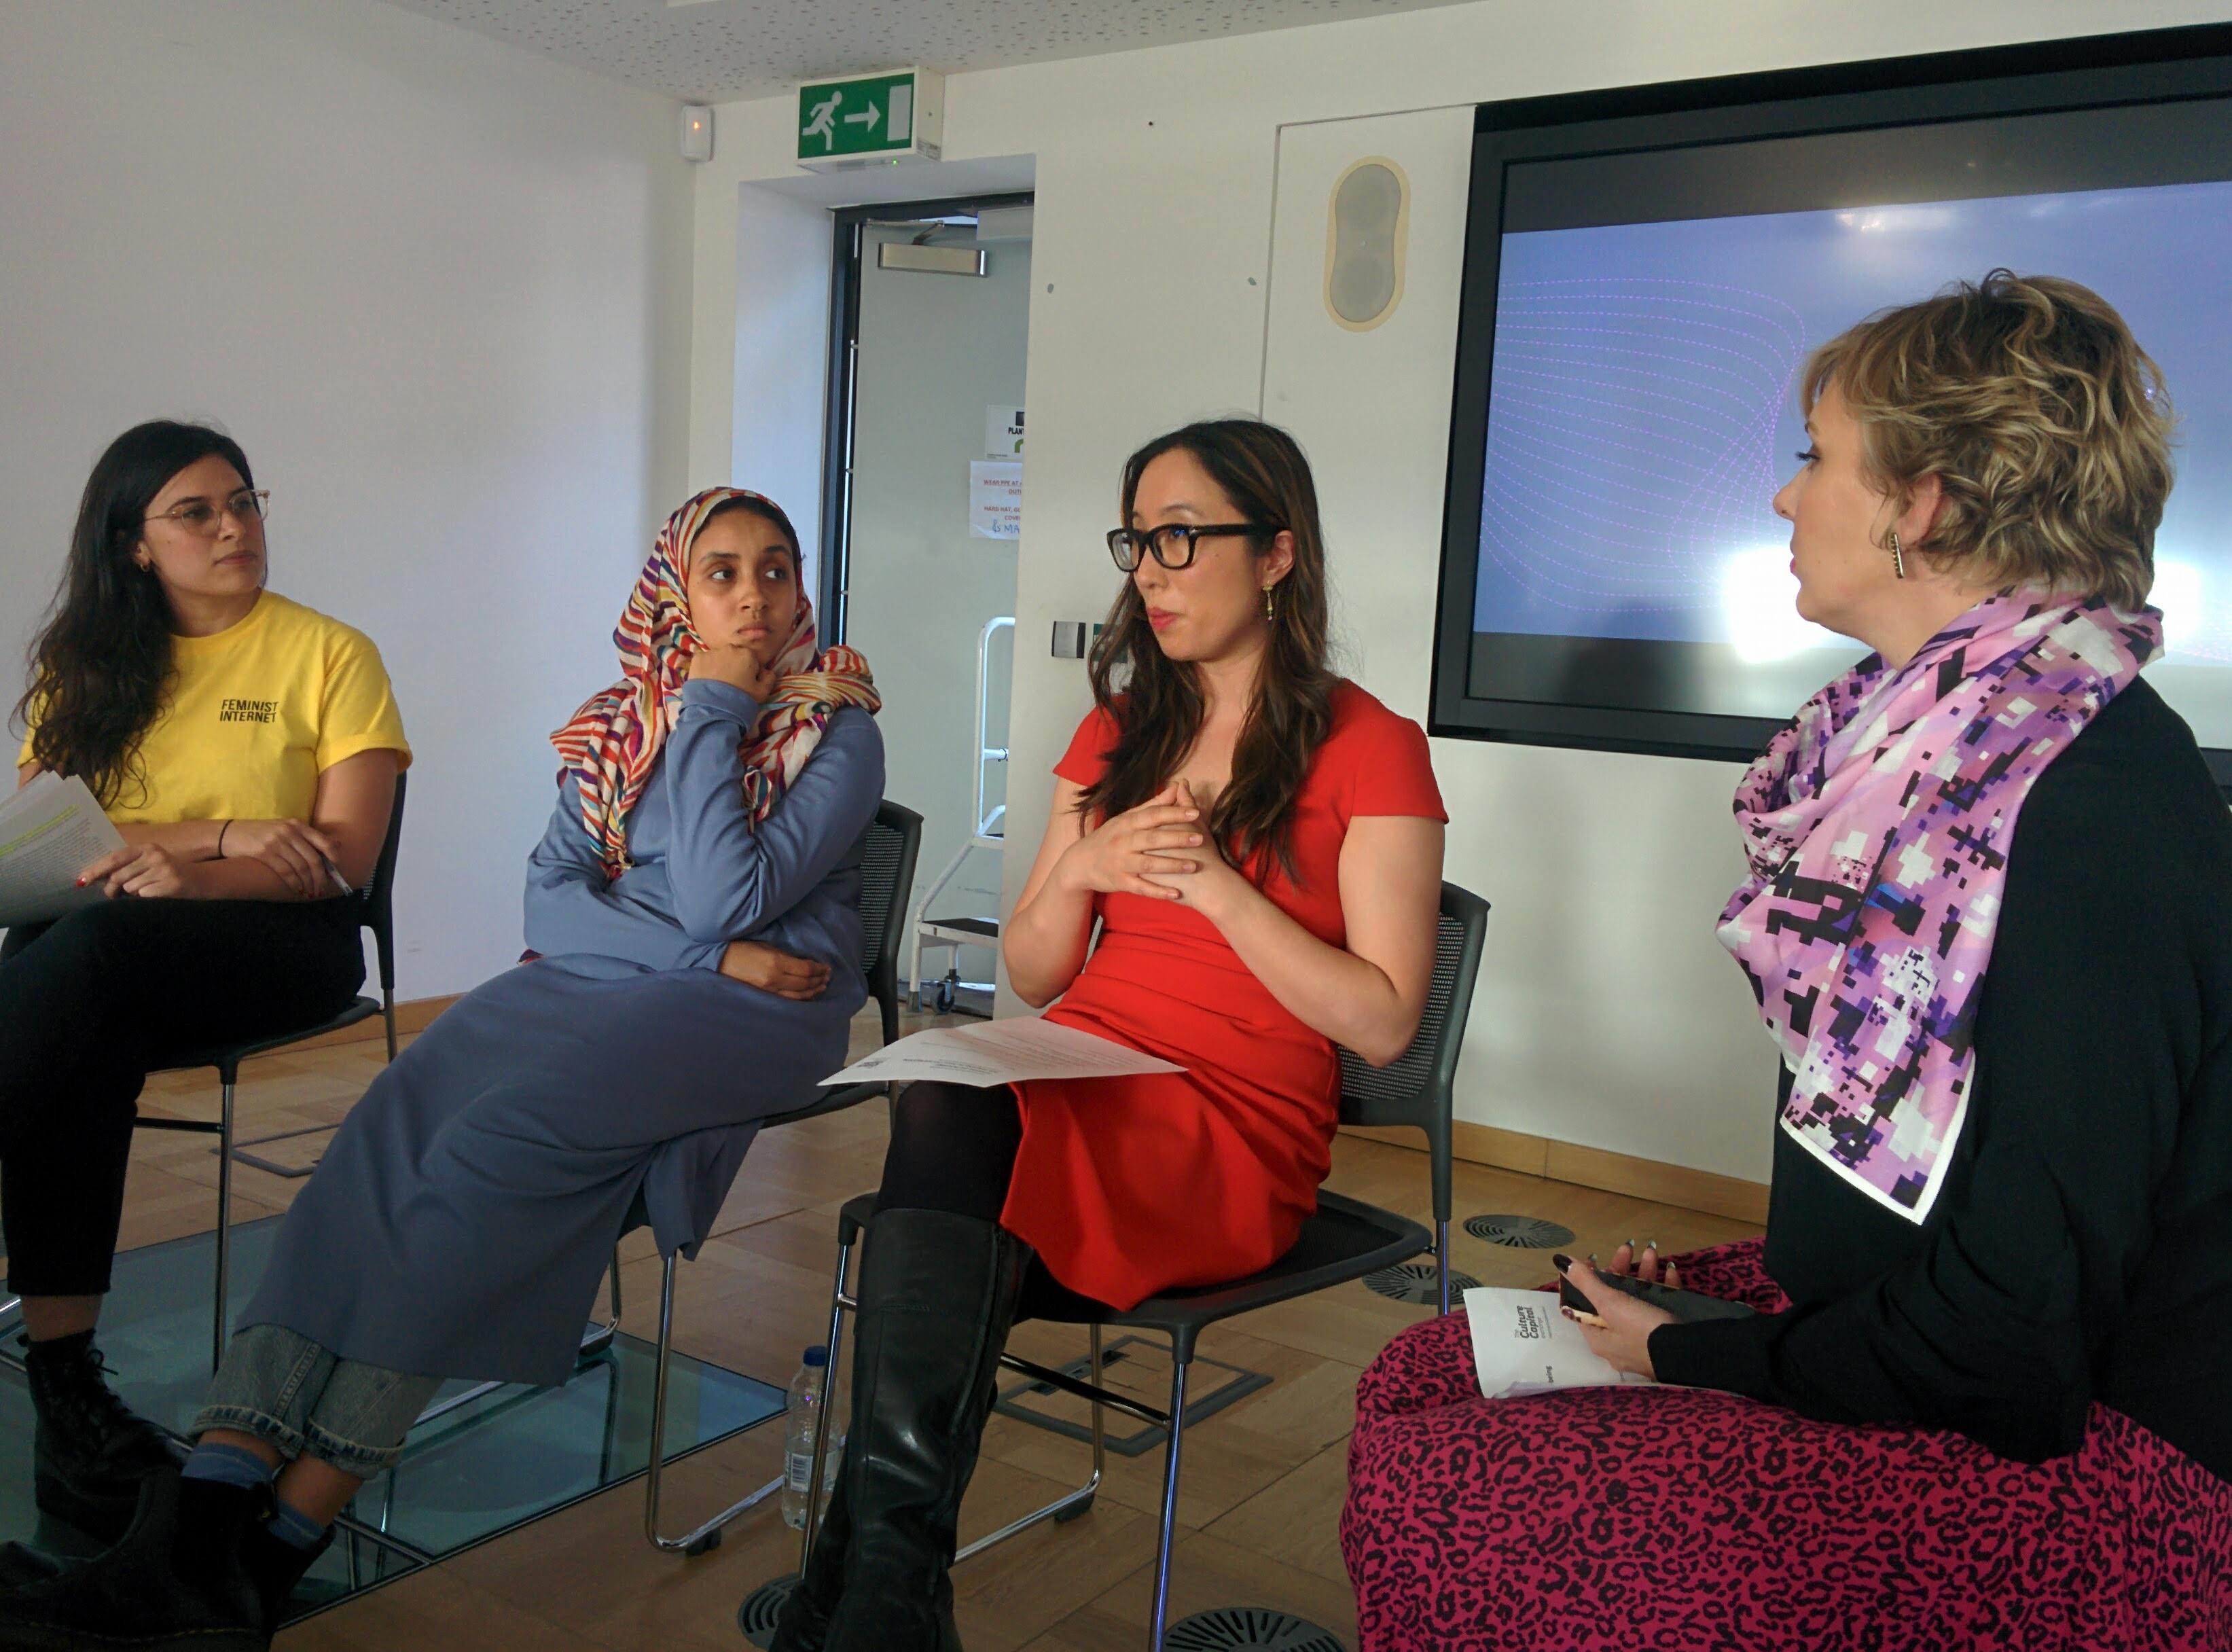 "From left: Dr Romy Gad el Rab, Hyphen-Labs; Abira Hussein, Independent Curator and Researcher; Dr Christine ""Xine"" Yao, UCL; Charlotte Frost, Furtherfield"